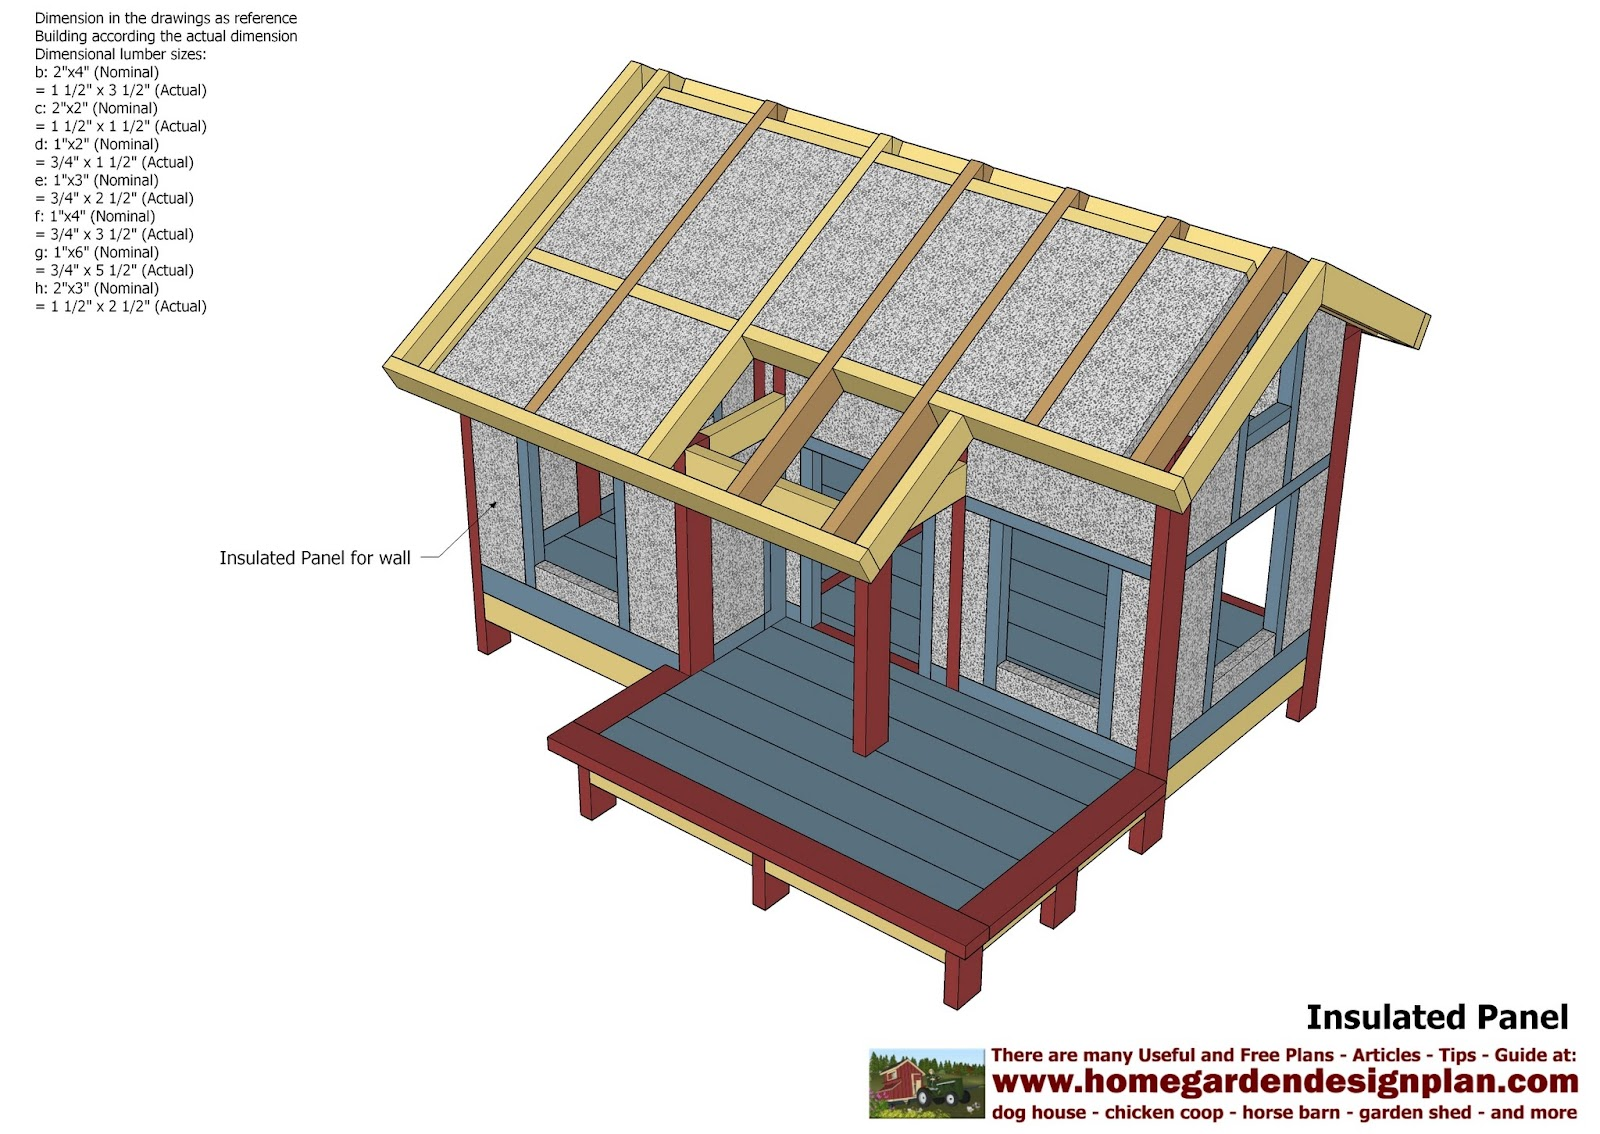 home garden plans: DH303 - Dog house plans - Dog house design - Insulated dog  house